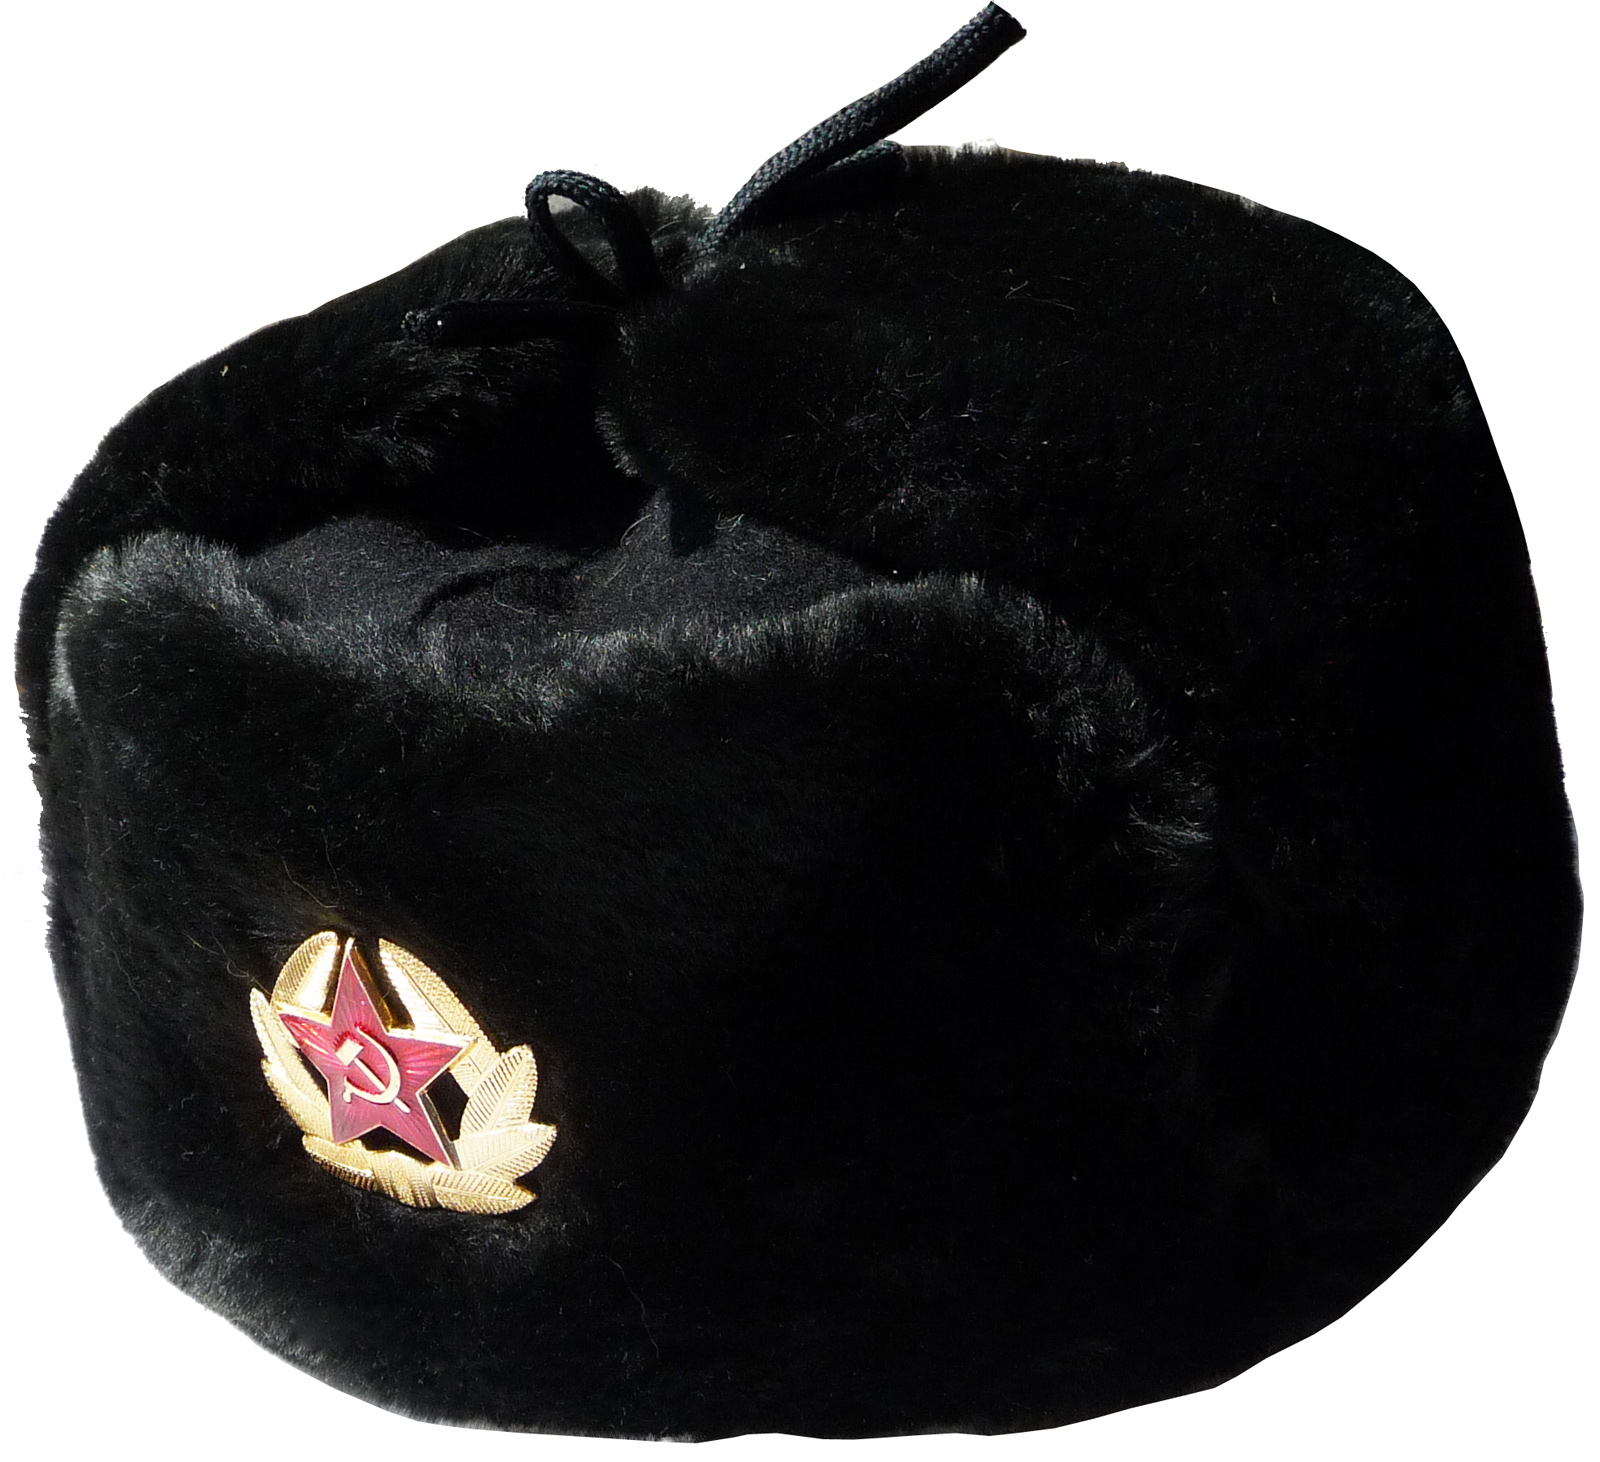 681c85b0b7f Black. Russian Navy seaman winter hat Navy seaman ushanka inside. Winter hat  earflaps on top